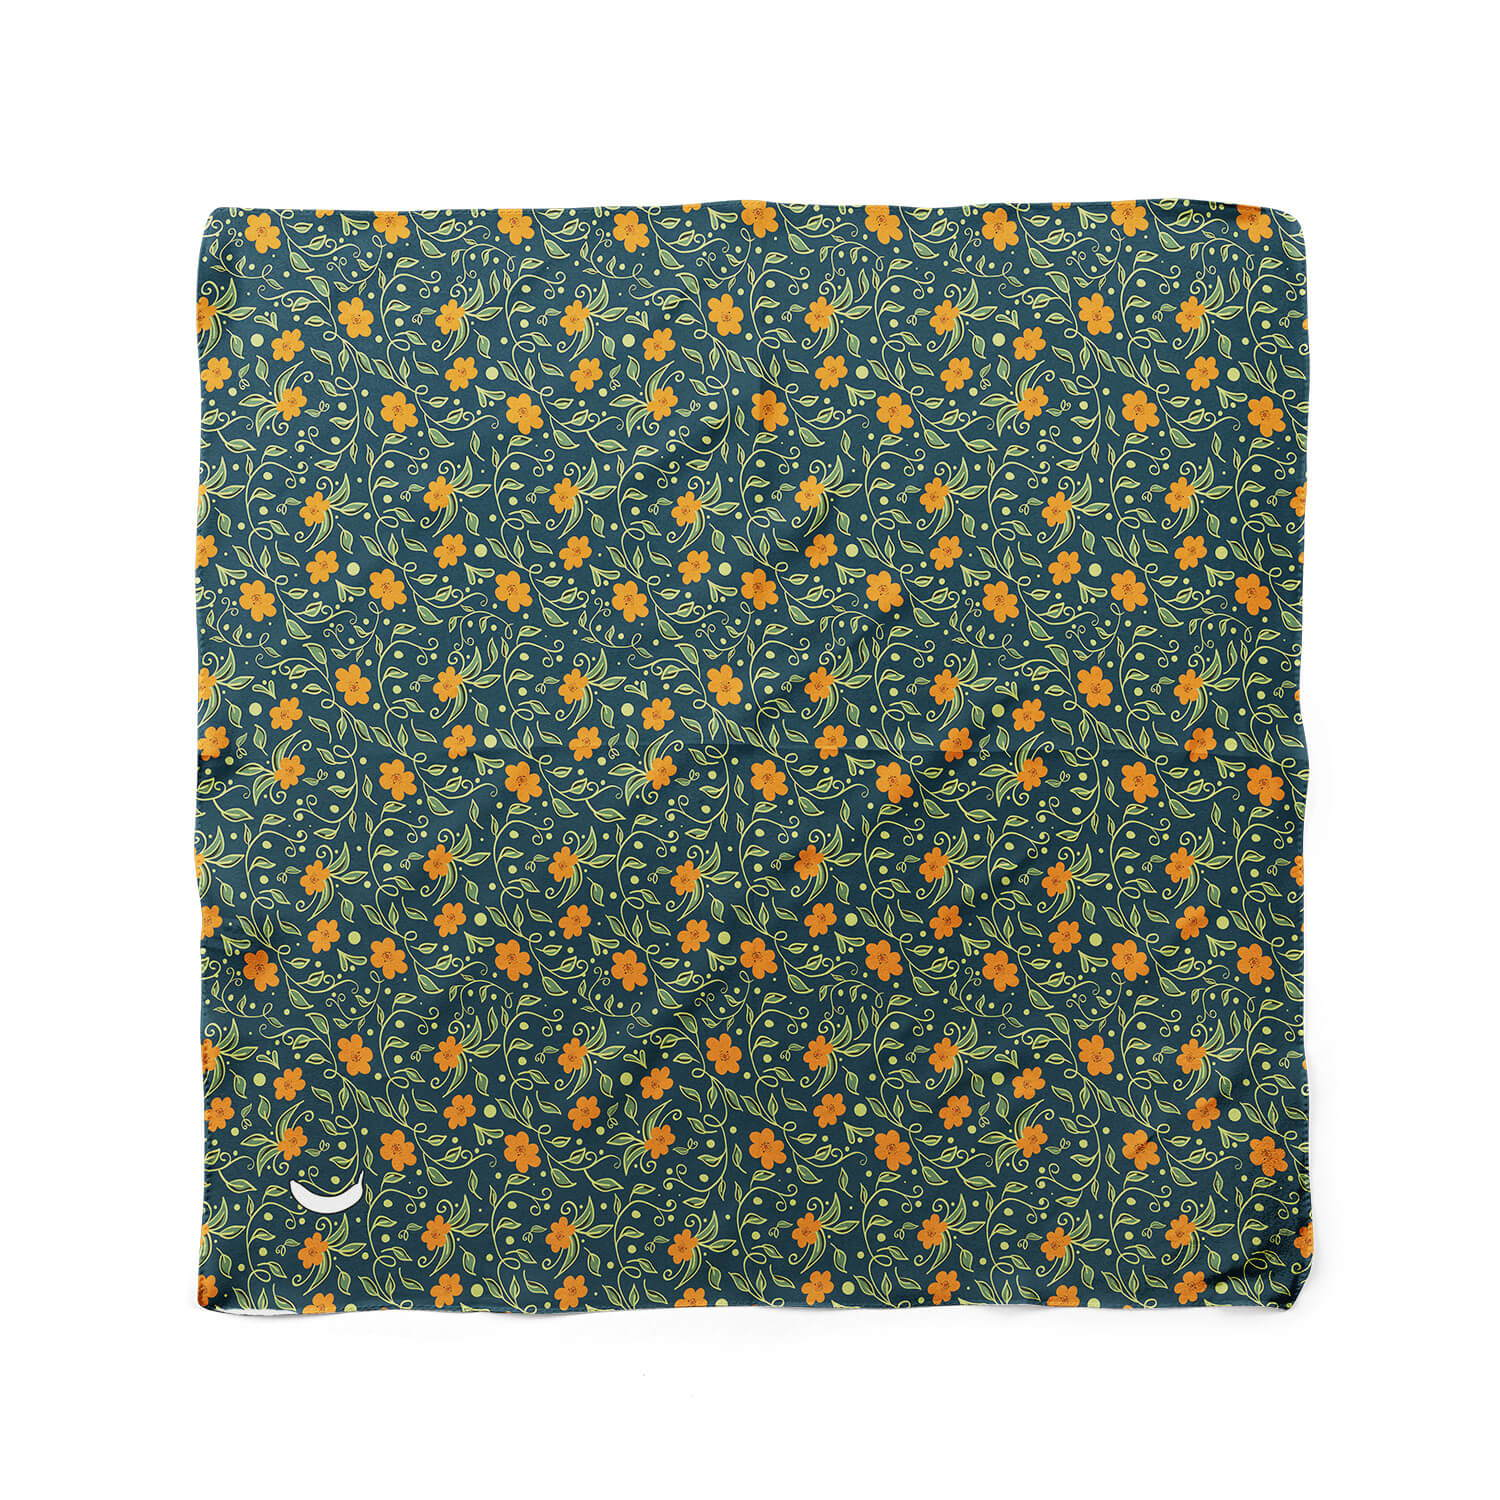 Banana Bandanas Secret Garden dog bandana green orange flower dog bandana